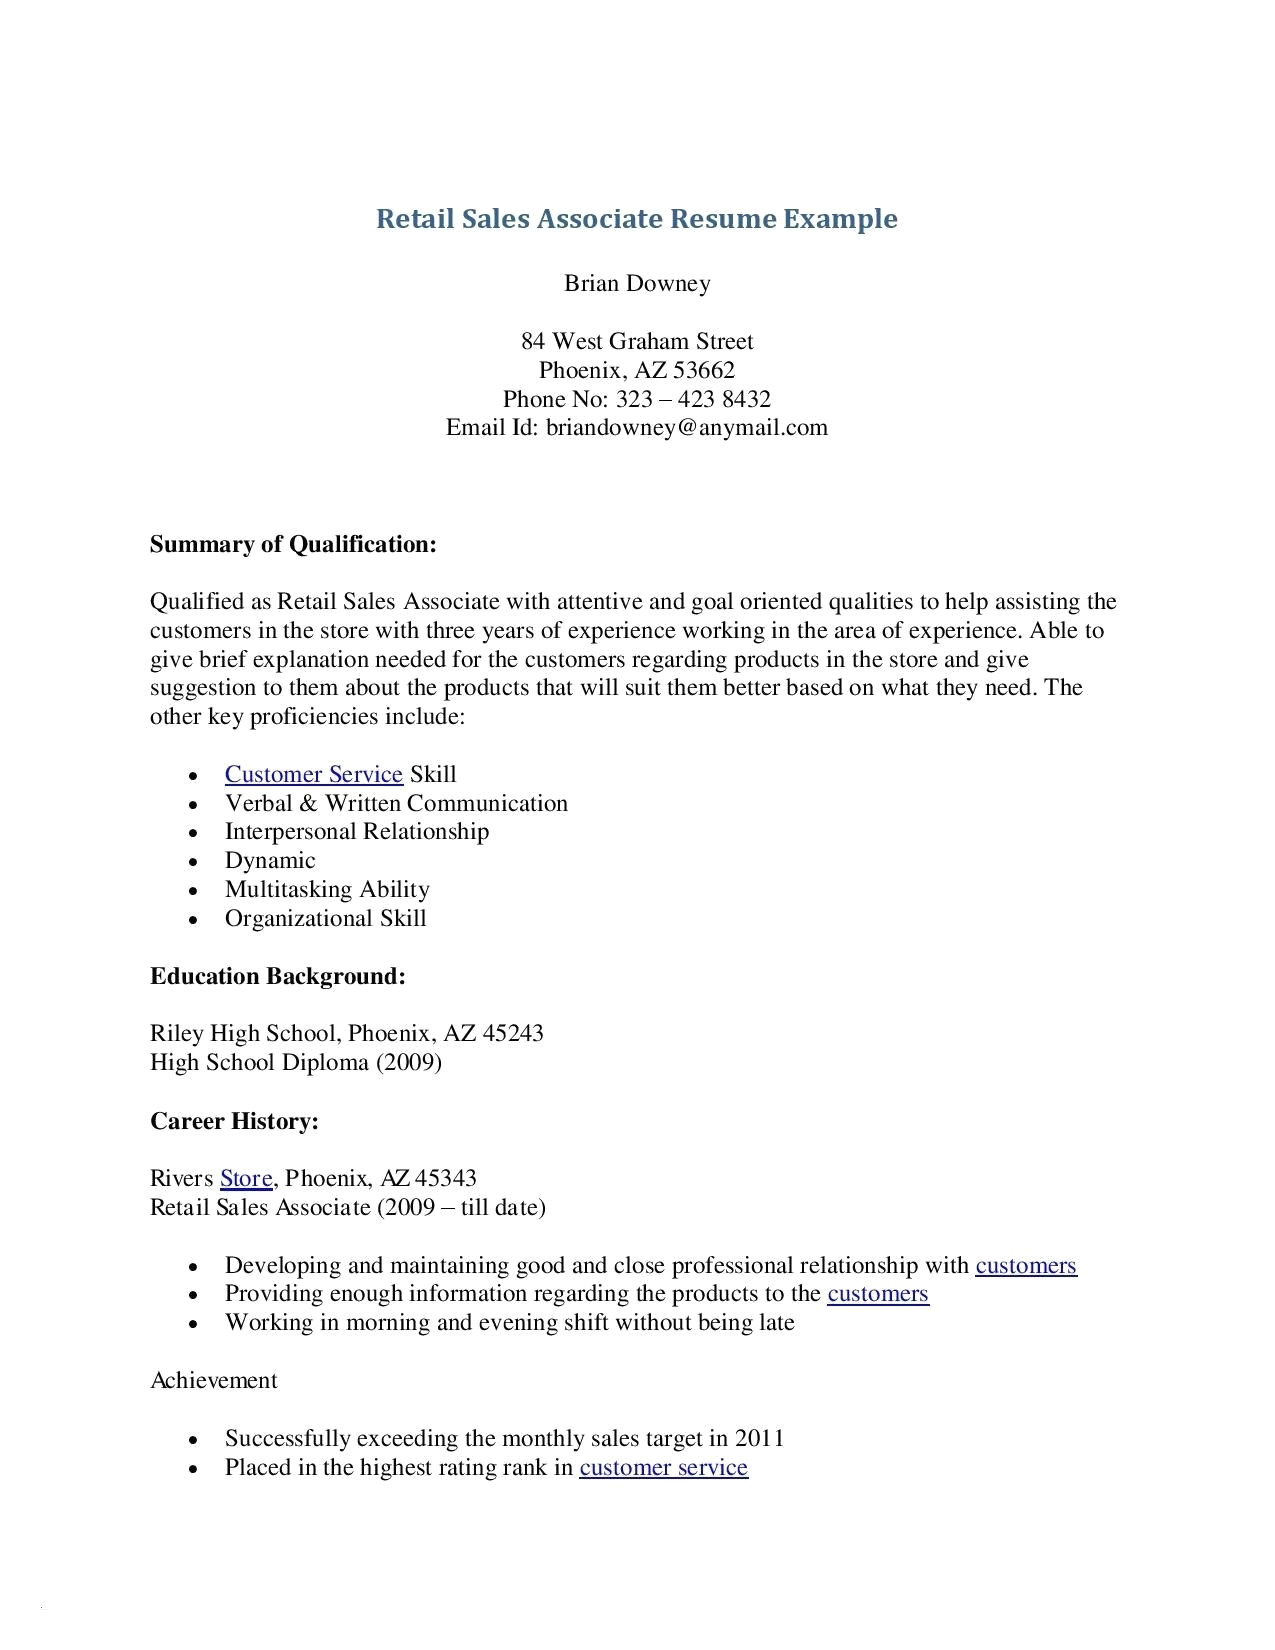 showroom sales resume example-Sample Retail Resume Inspirational Retail Resume 0d Archives Bcbostonians1986 19-l